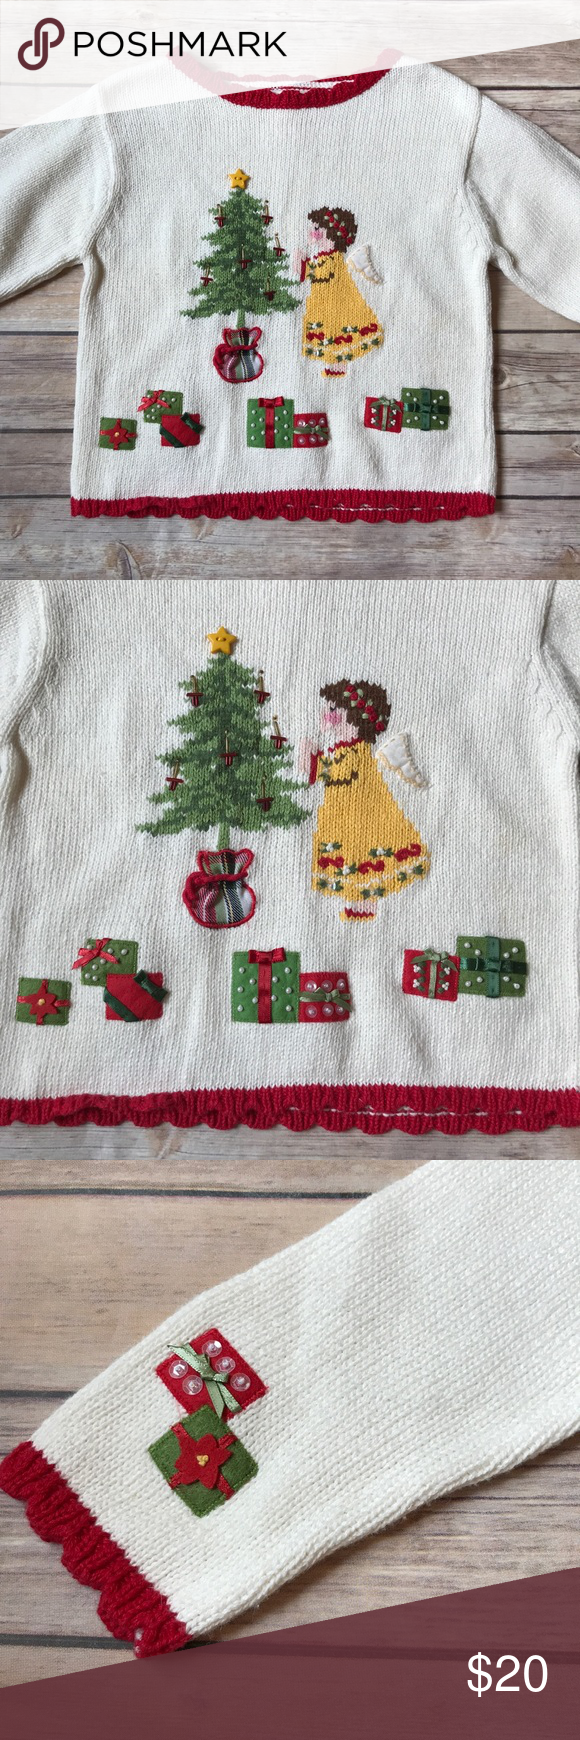 NWT Hartstrings Christmas Sweater Size 4, Hartstrings Christmas sweater. Brand new with tags still attached. Christmas tree, angel and presents with sweet details. Red scalloped trim. Soft and comfy. No flaws. Hartstrings Shirts & Tops Sweaters